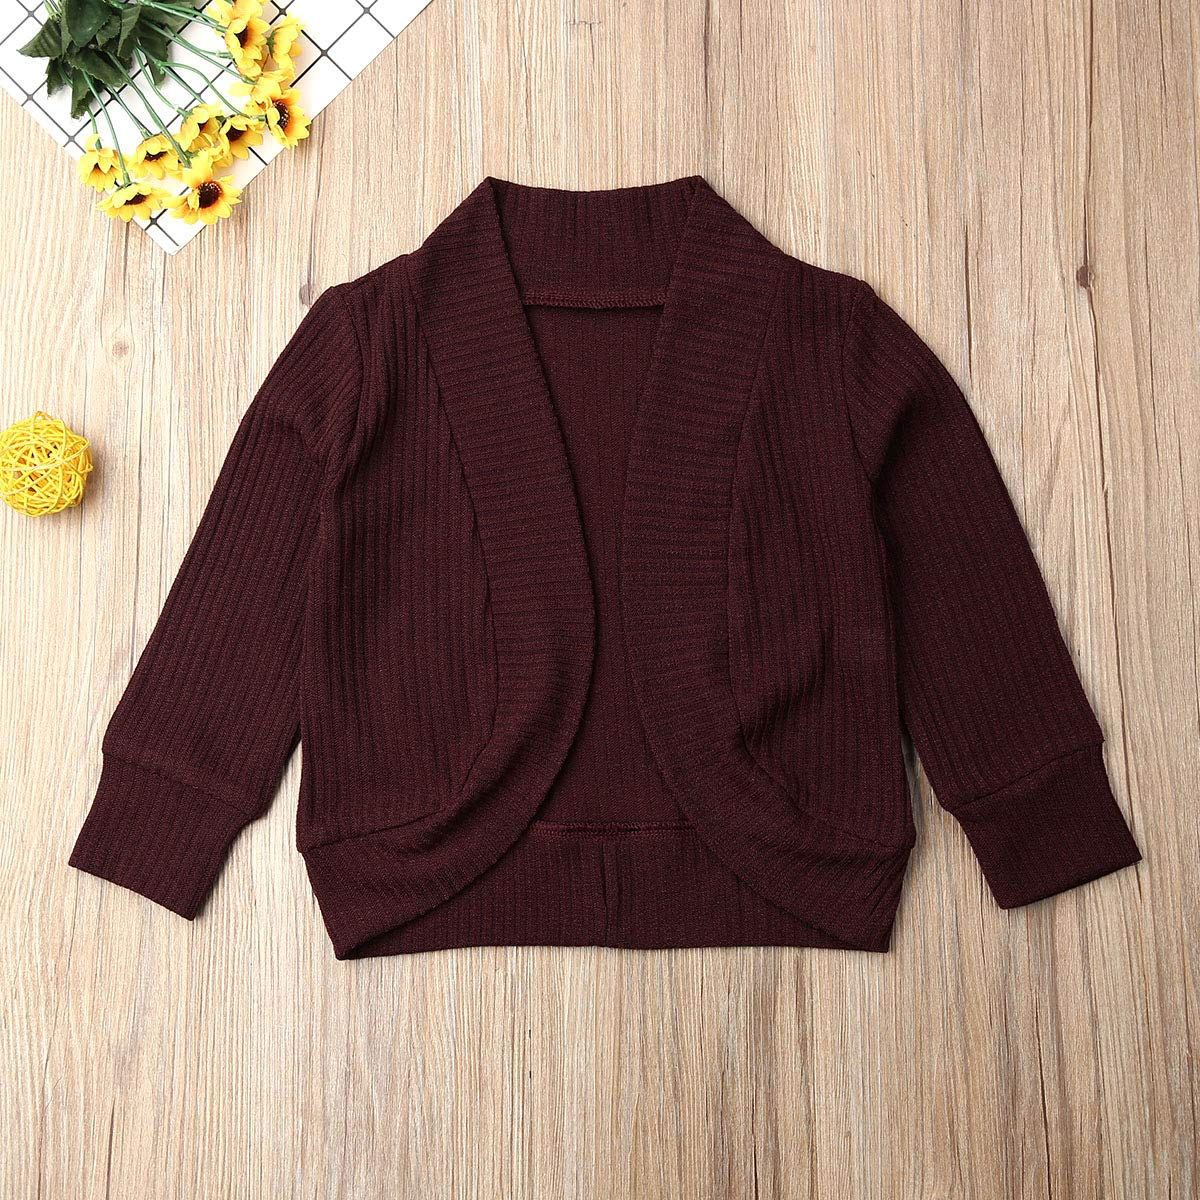 Toddler Baby Girl Knitted Sweater Cardigan Solid Color Long Sleeve Fall Winter Coat Outfits